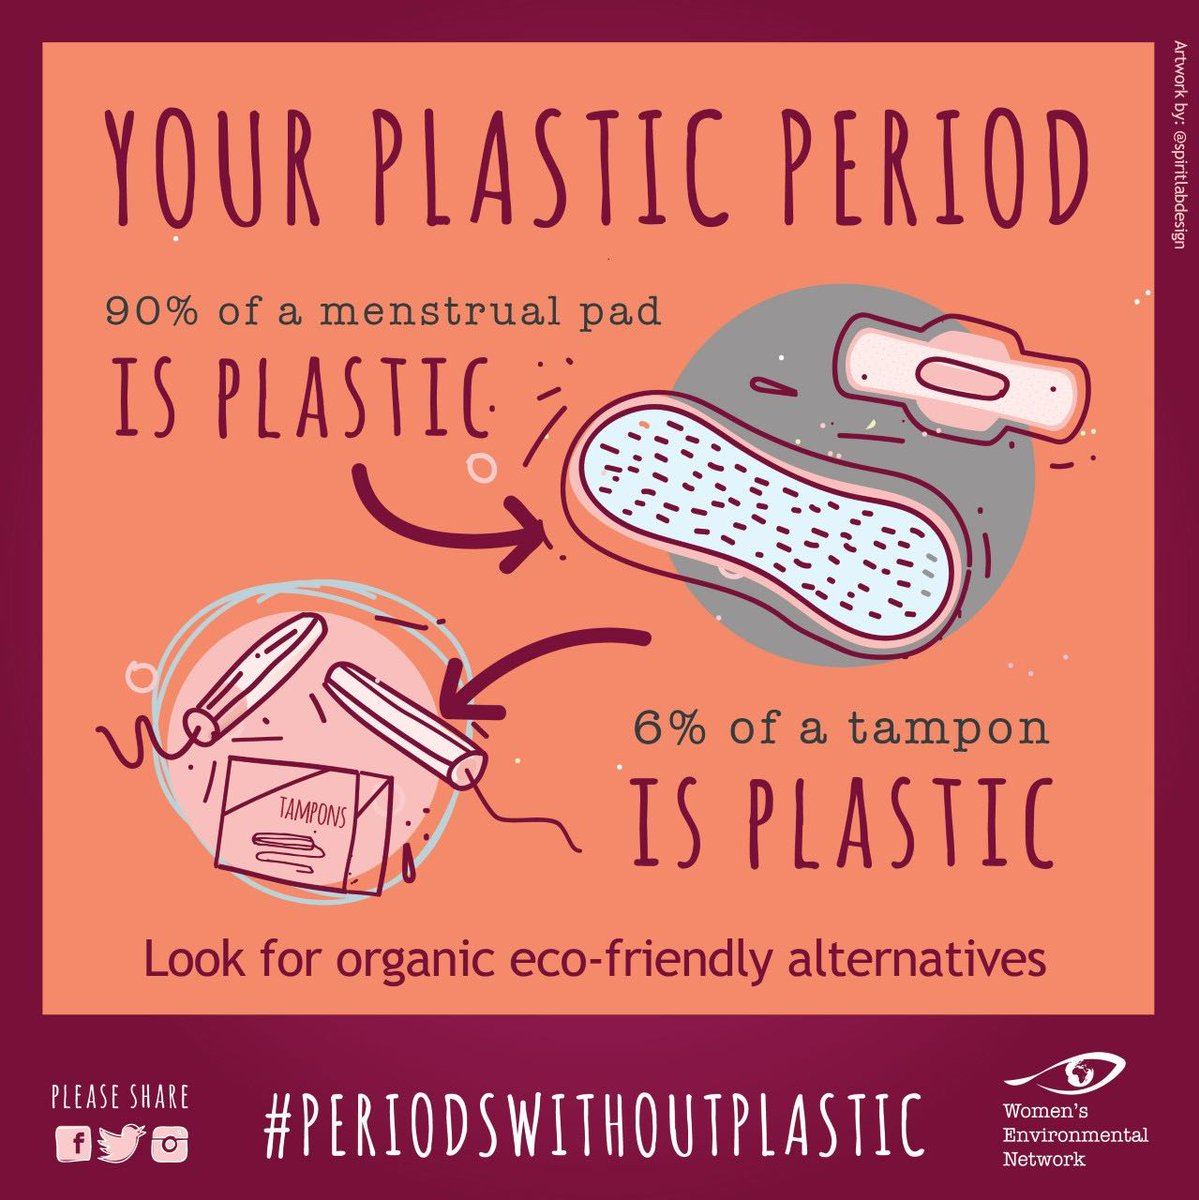 Get The Plastic Out Of Your Period